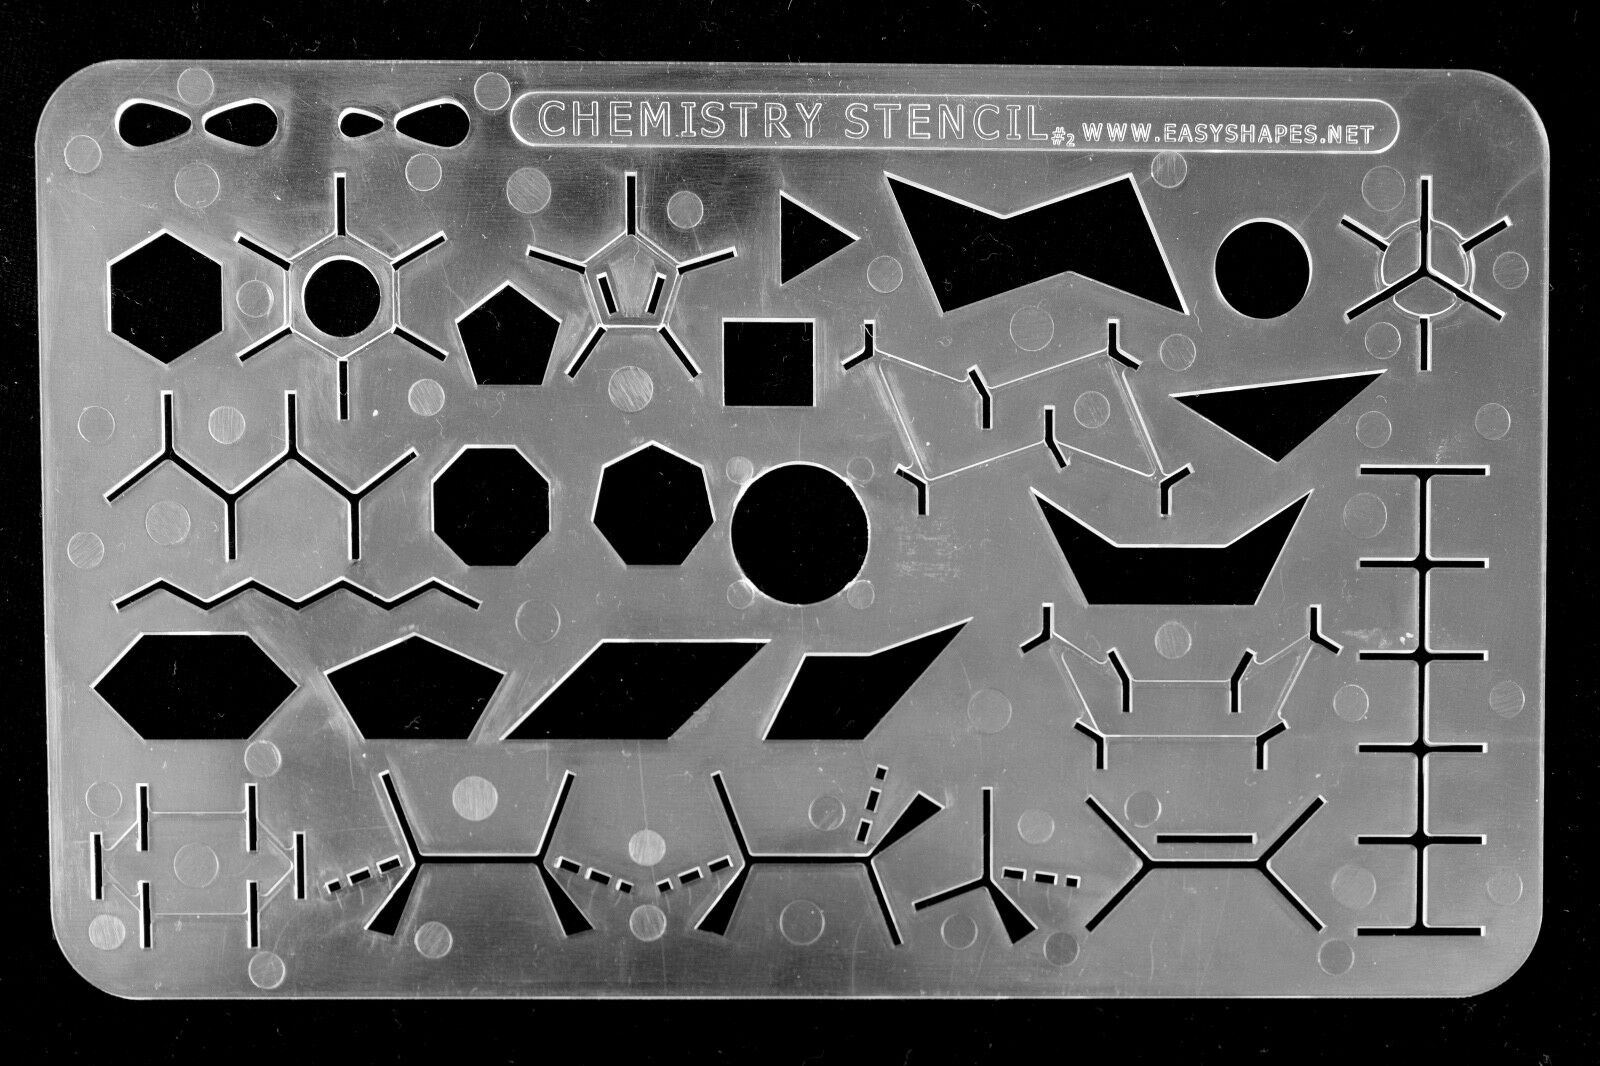 Organic Chemistry Stencil Drawing Template Art Supplies